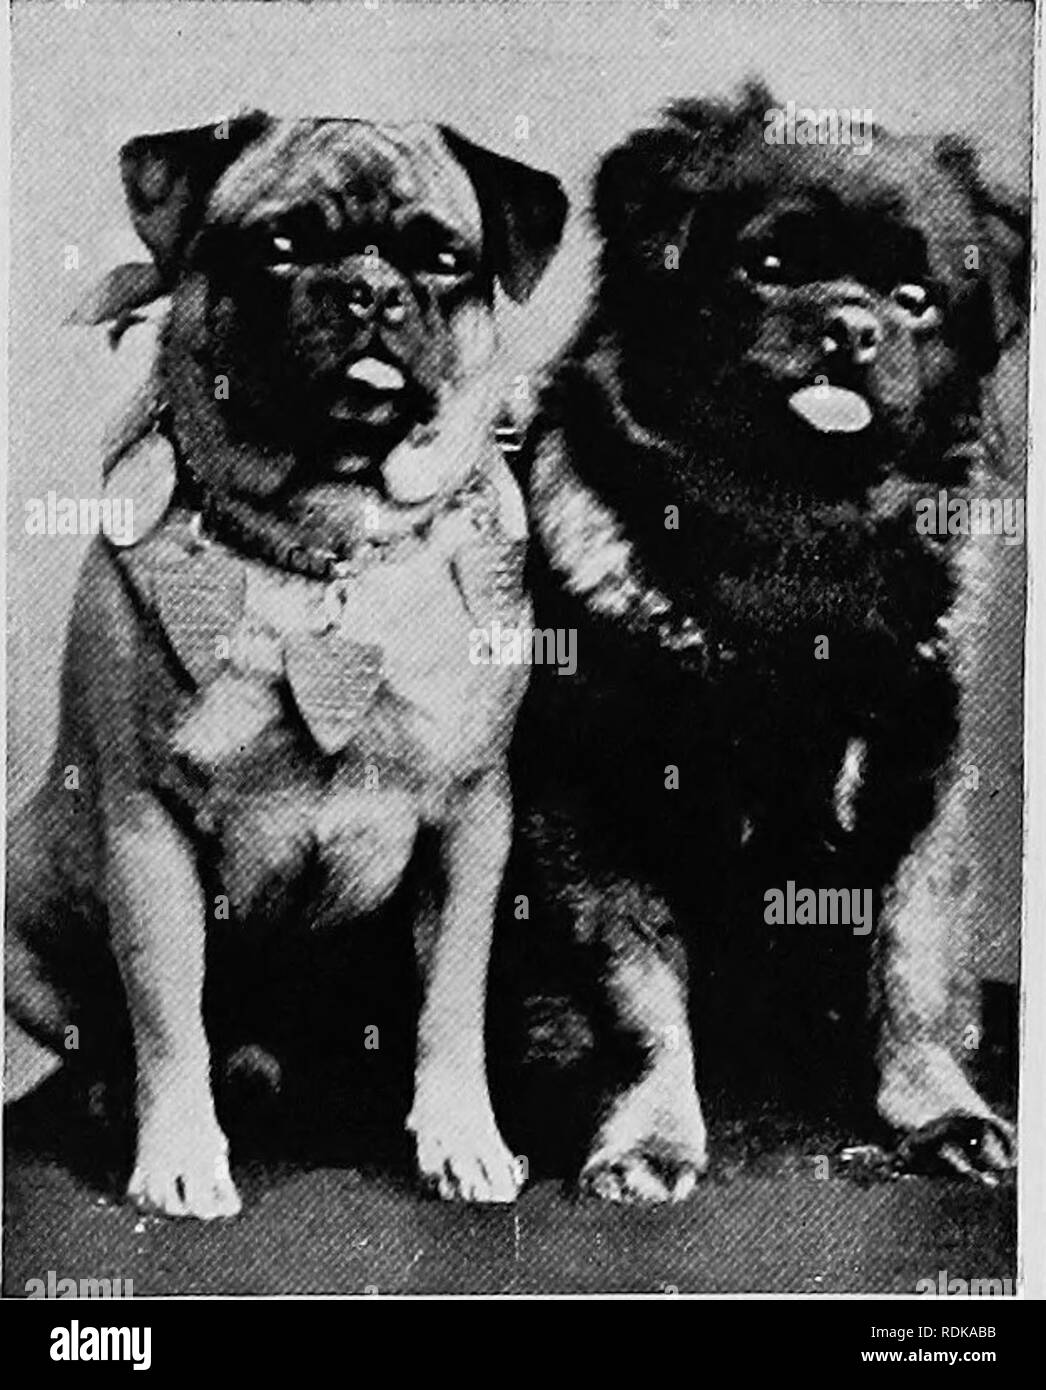 """. Mammals of other lands;. Mammals. THE DOG FAMILY 107. very quaint and peculiar in appearance. They should have square heads and muzzles, with small,ears, large protruding eyes, short thick bodies, and tails tightly curled over the back. The illus- tration, """" Duchess of Connaught,"""" is of a well-known winner. Maltese Terriers are very beautiful when pure bred. They have a long straight coat of silky white hair nearly reaching the ground, black nose and eyes, and the tail curled over the back of their short cobby body. Their beauty well repays the trouble of keeping them in good condi - Stock Image"""